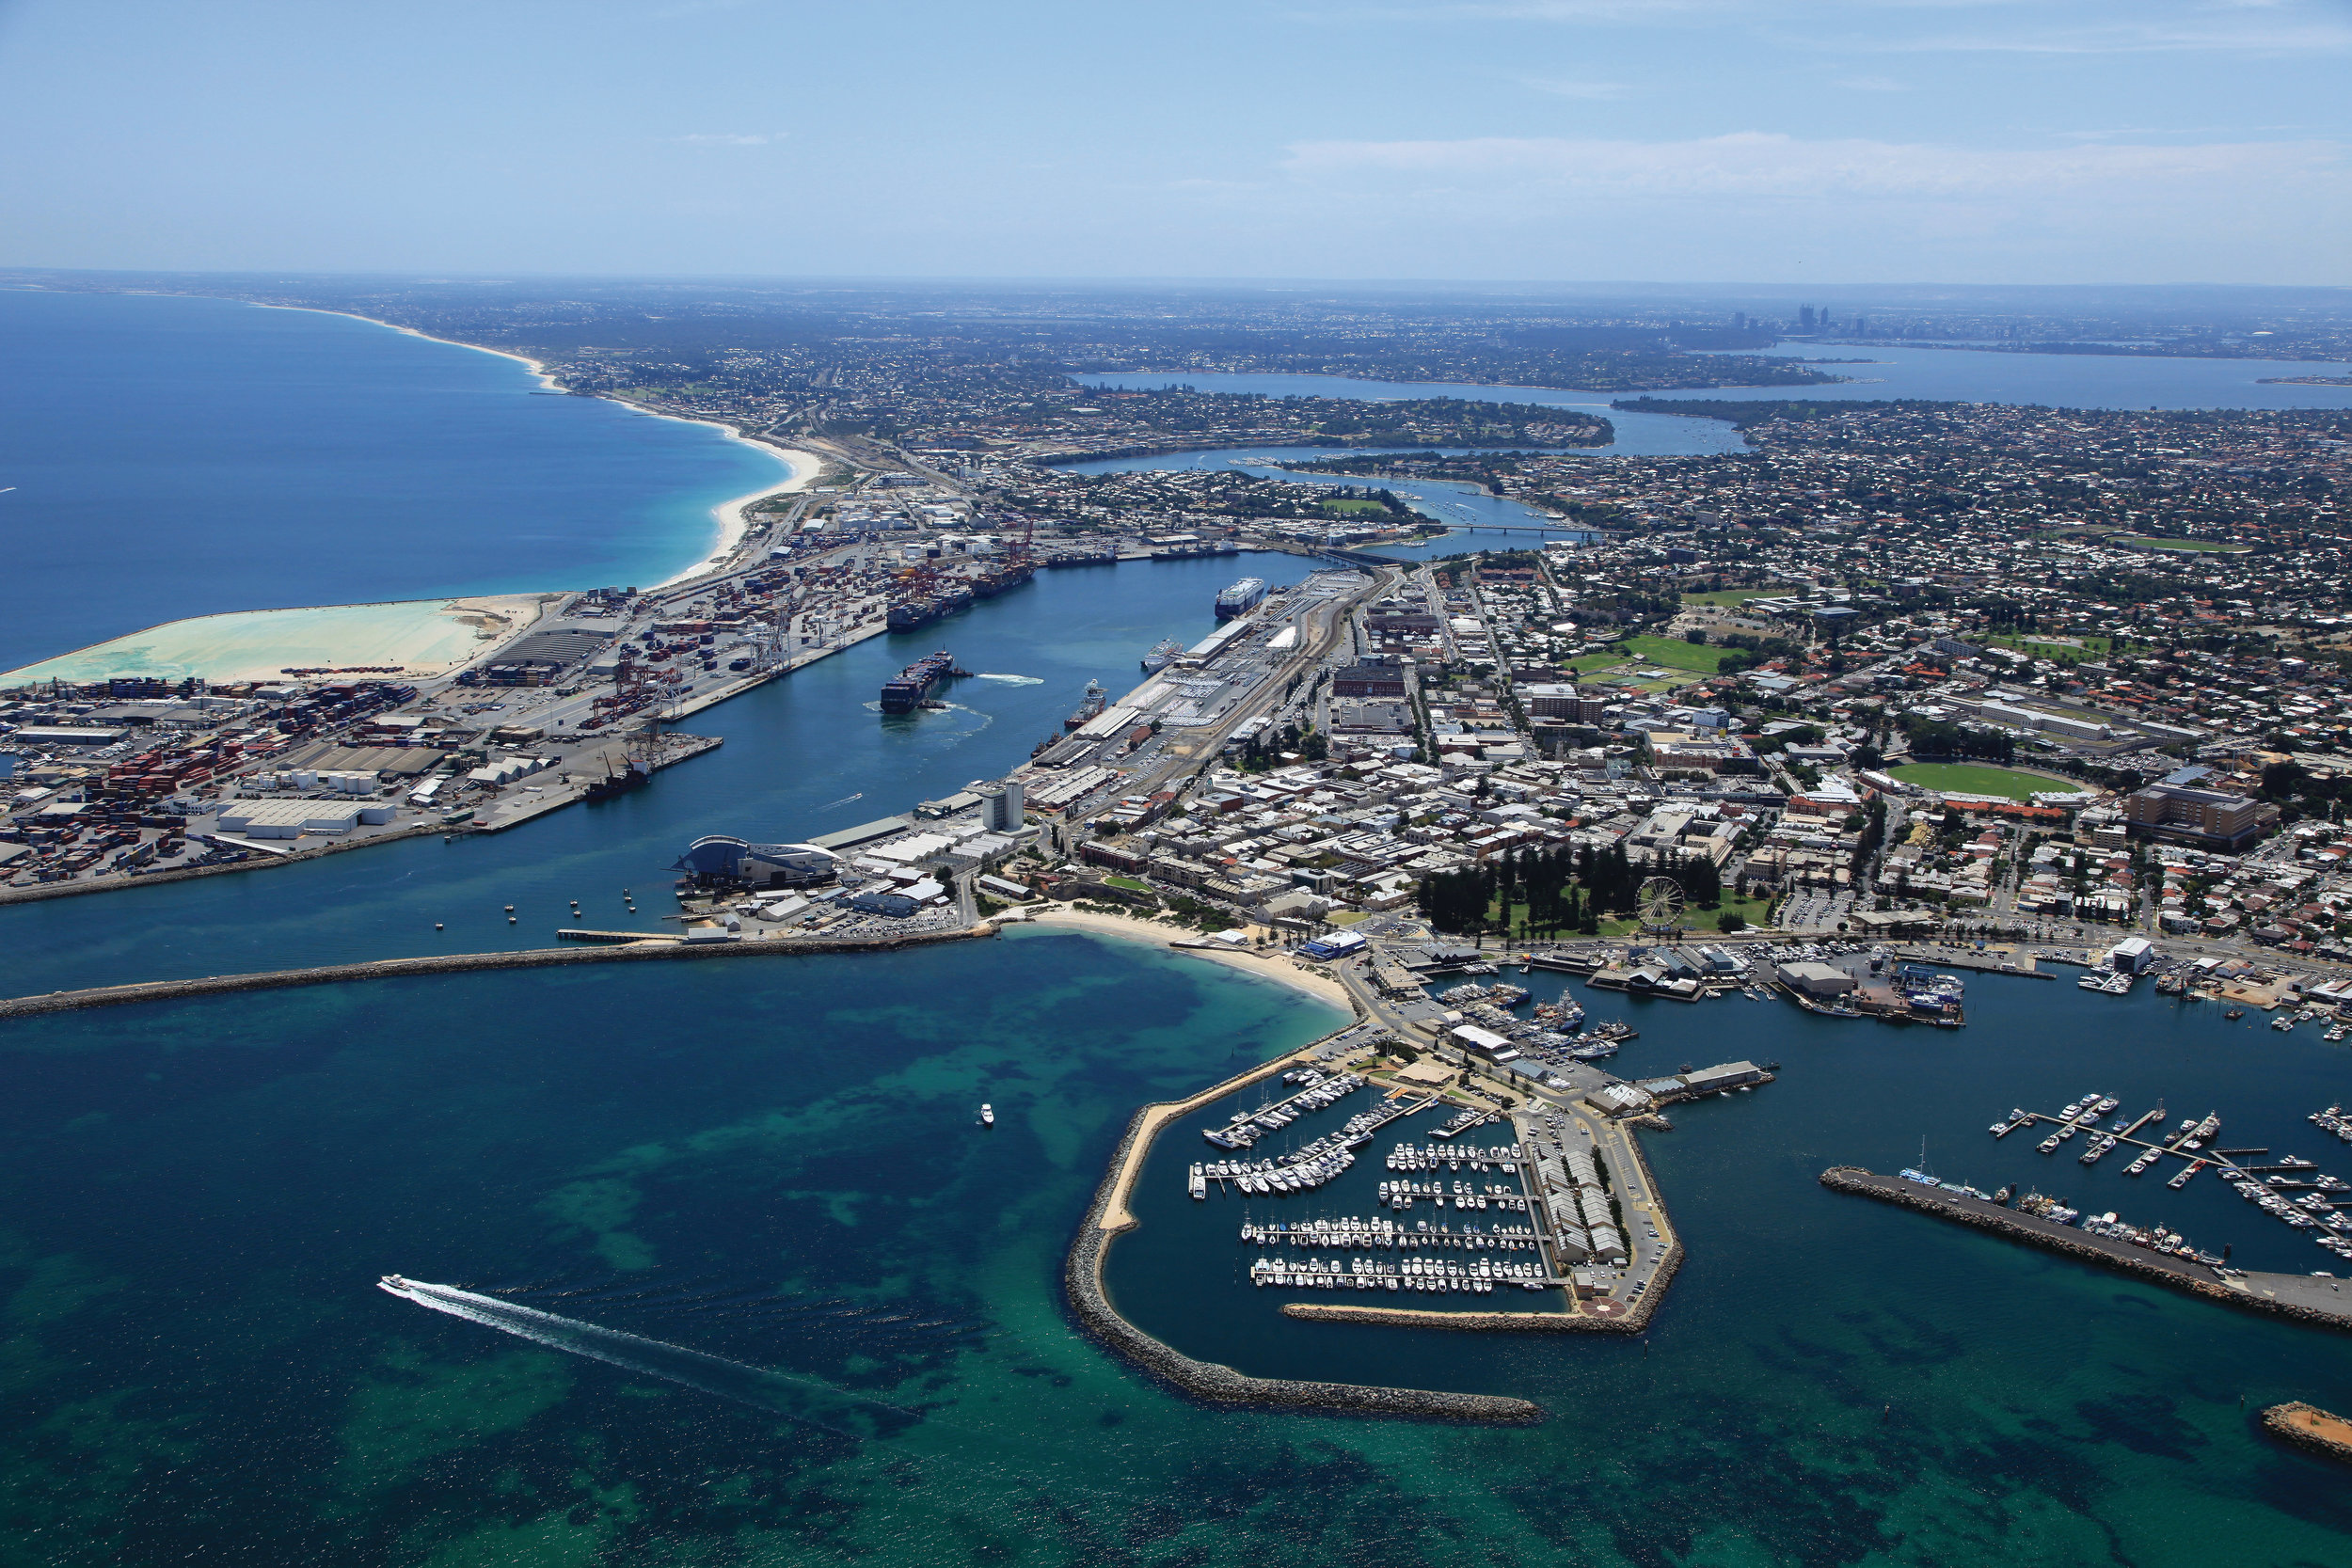 Aerial view of Fremantle